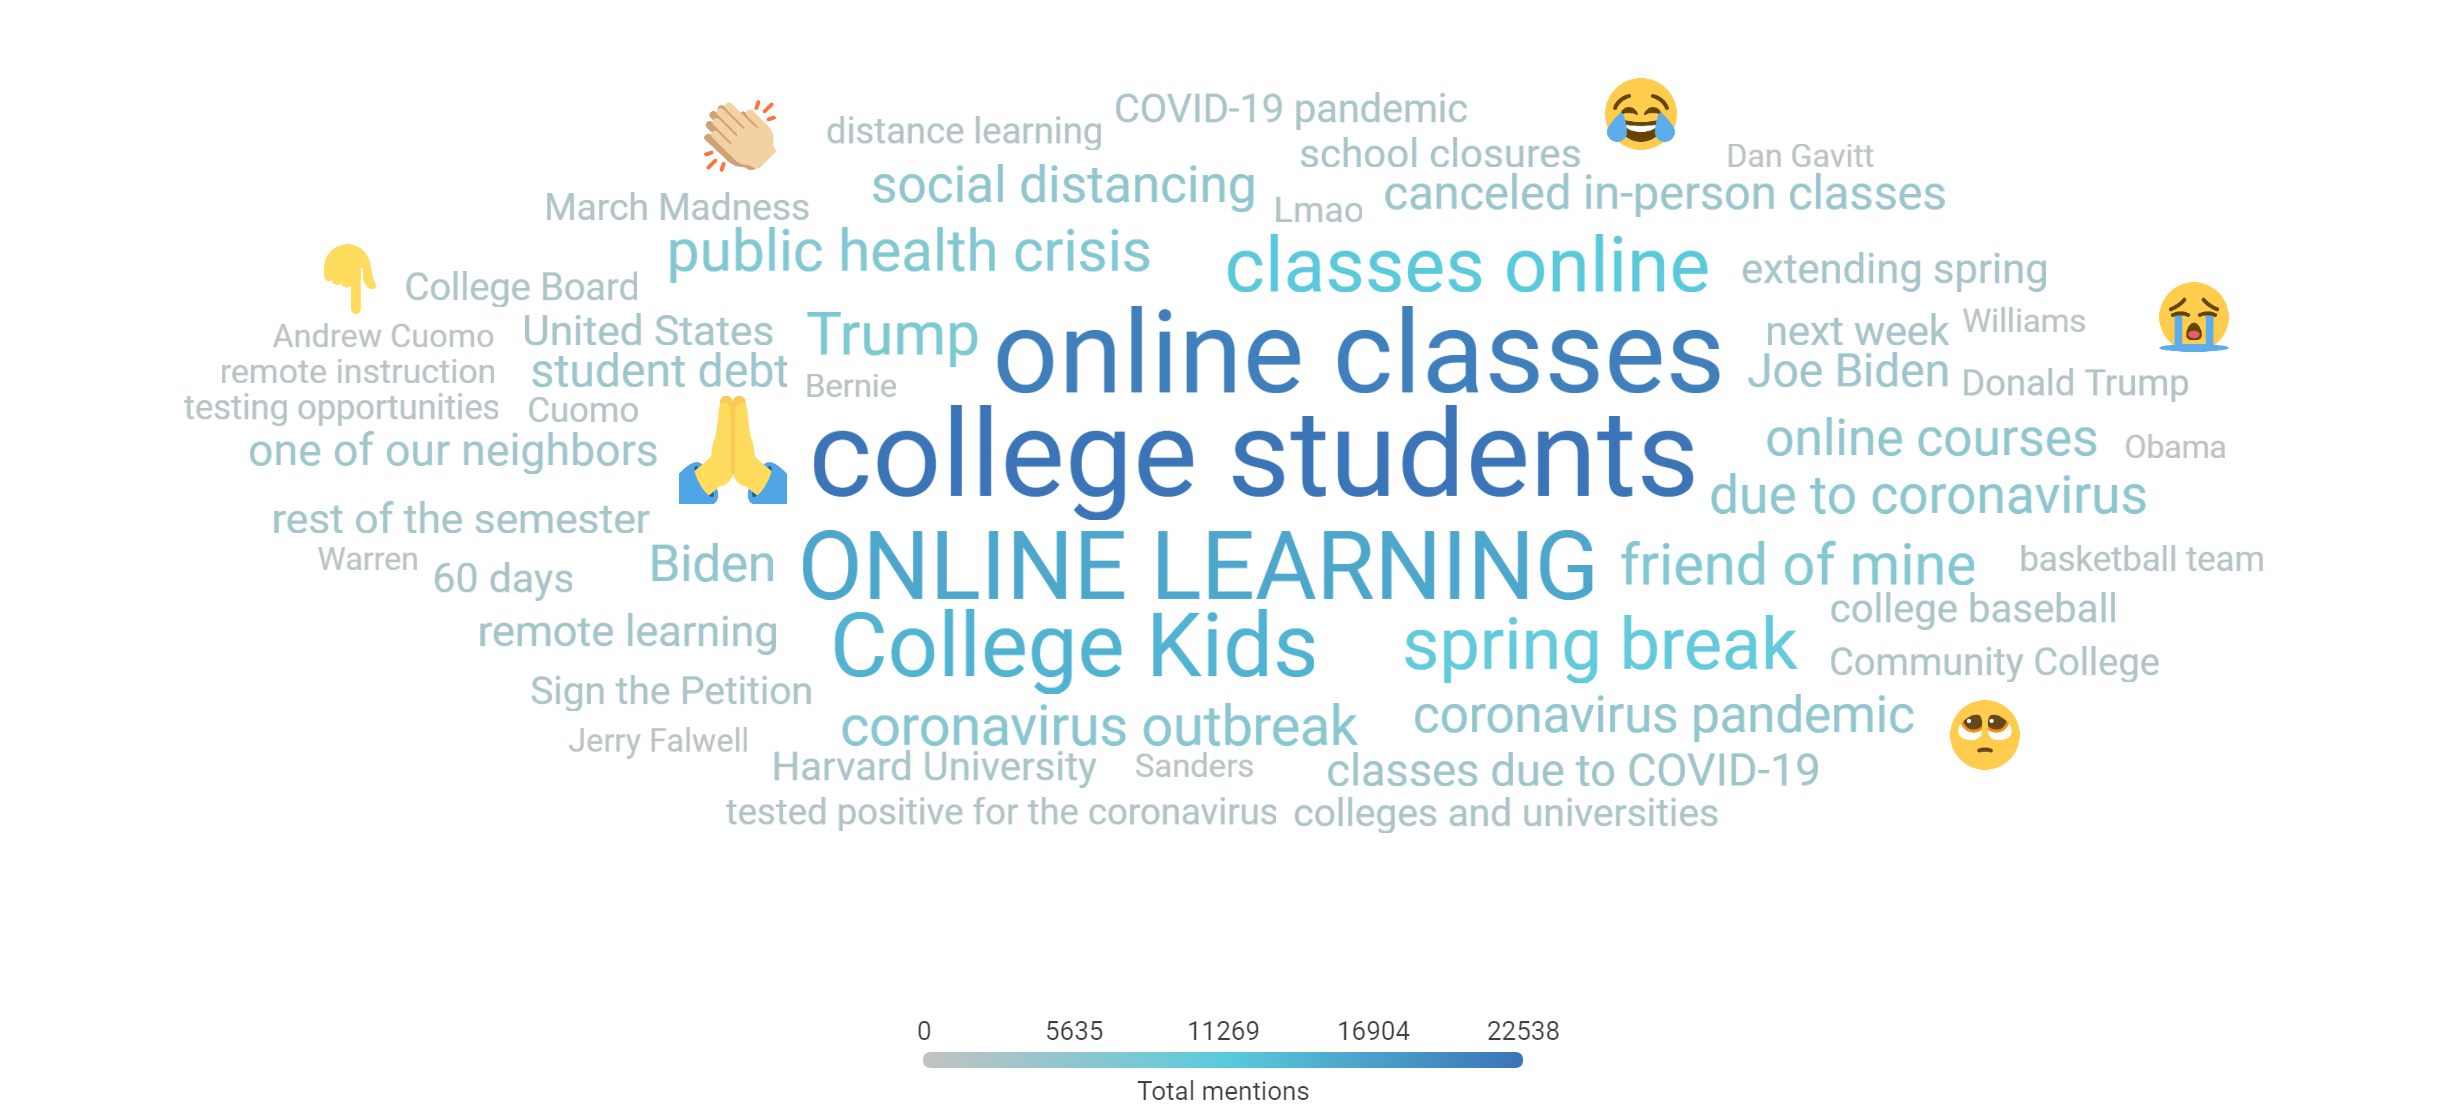 """Higher ed topic focused word cloud with """"online classes,"""" """"college students,"""" ONLINE LEARNING,"""" and """"College Kids"""" being the most popular topics"""